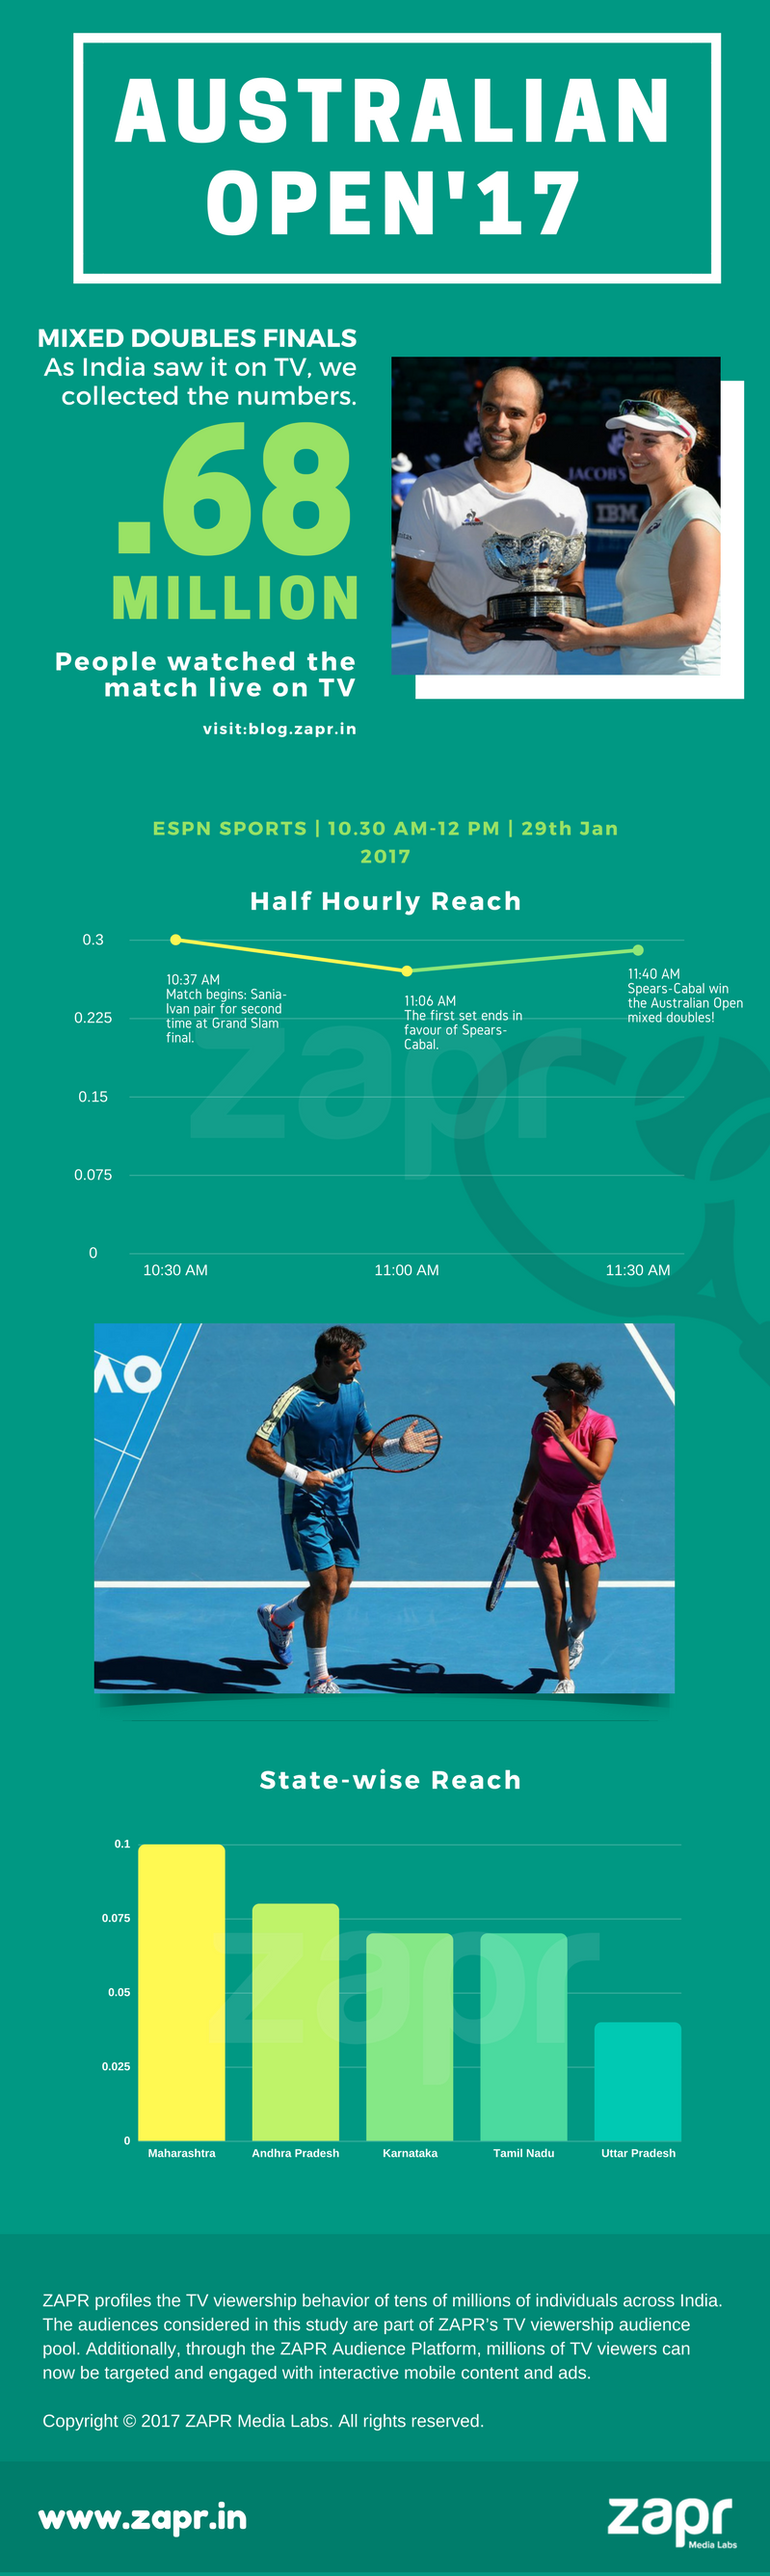 New_AO_Mixed Doubles Finals.png